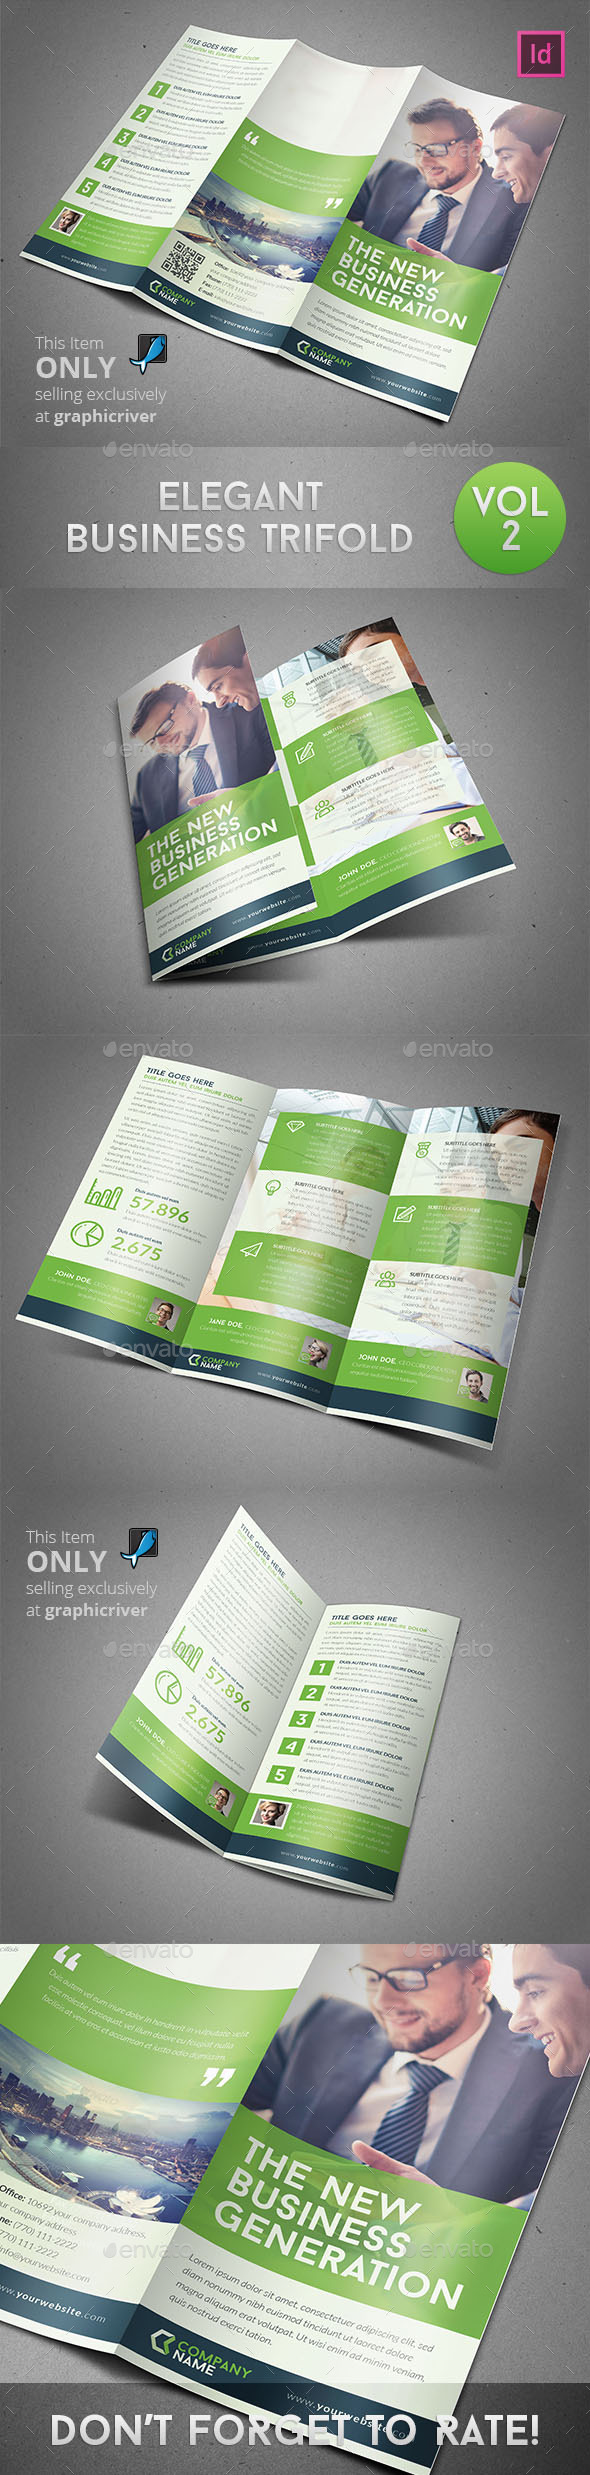 GraphicRiver Elegant Business Trifold 9863282